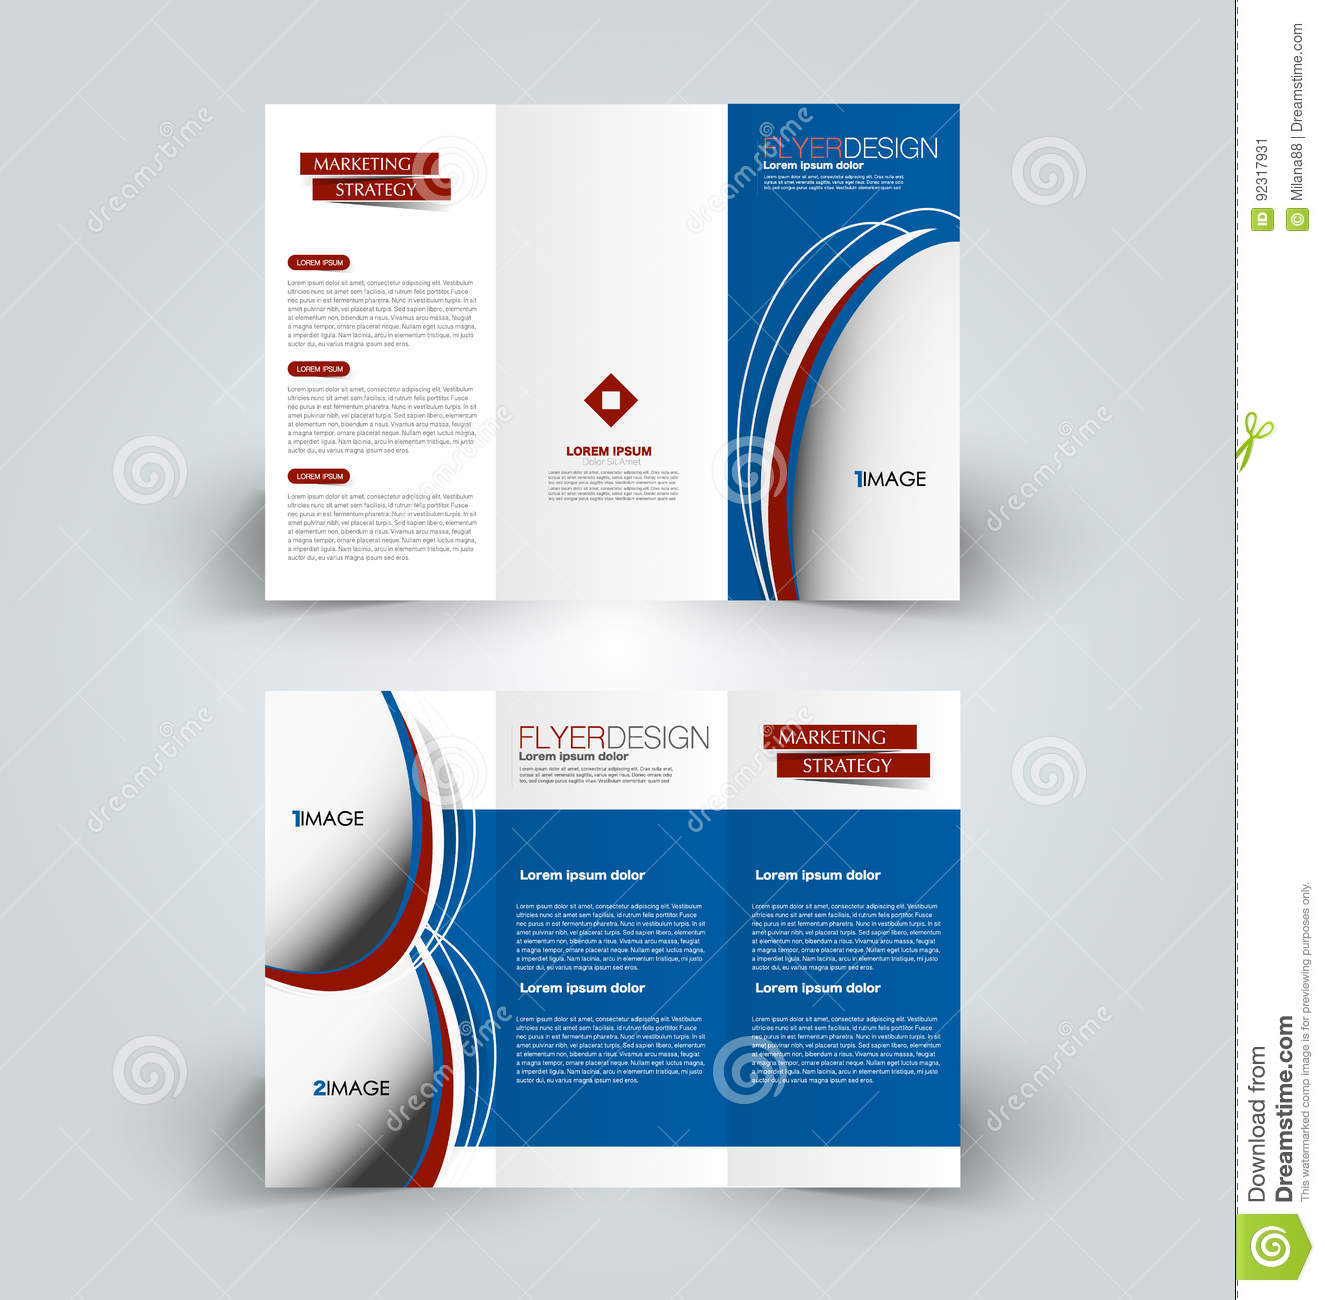 Brochure Design Template For Business Education Advertisement